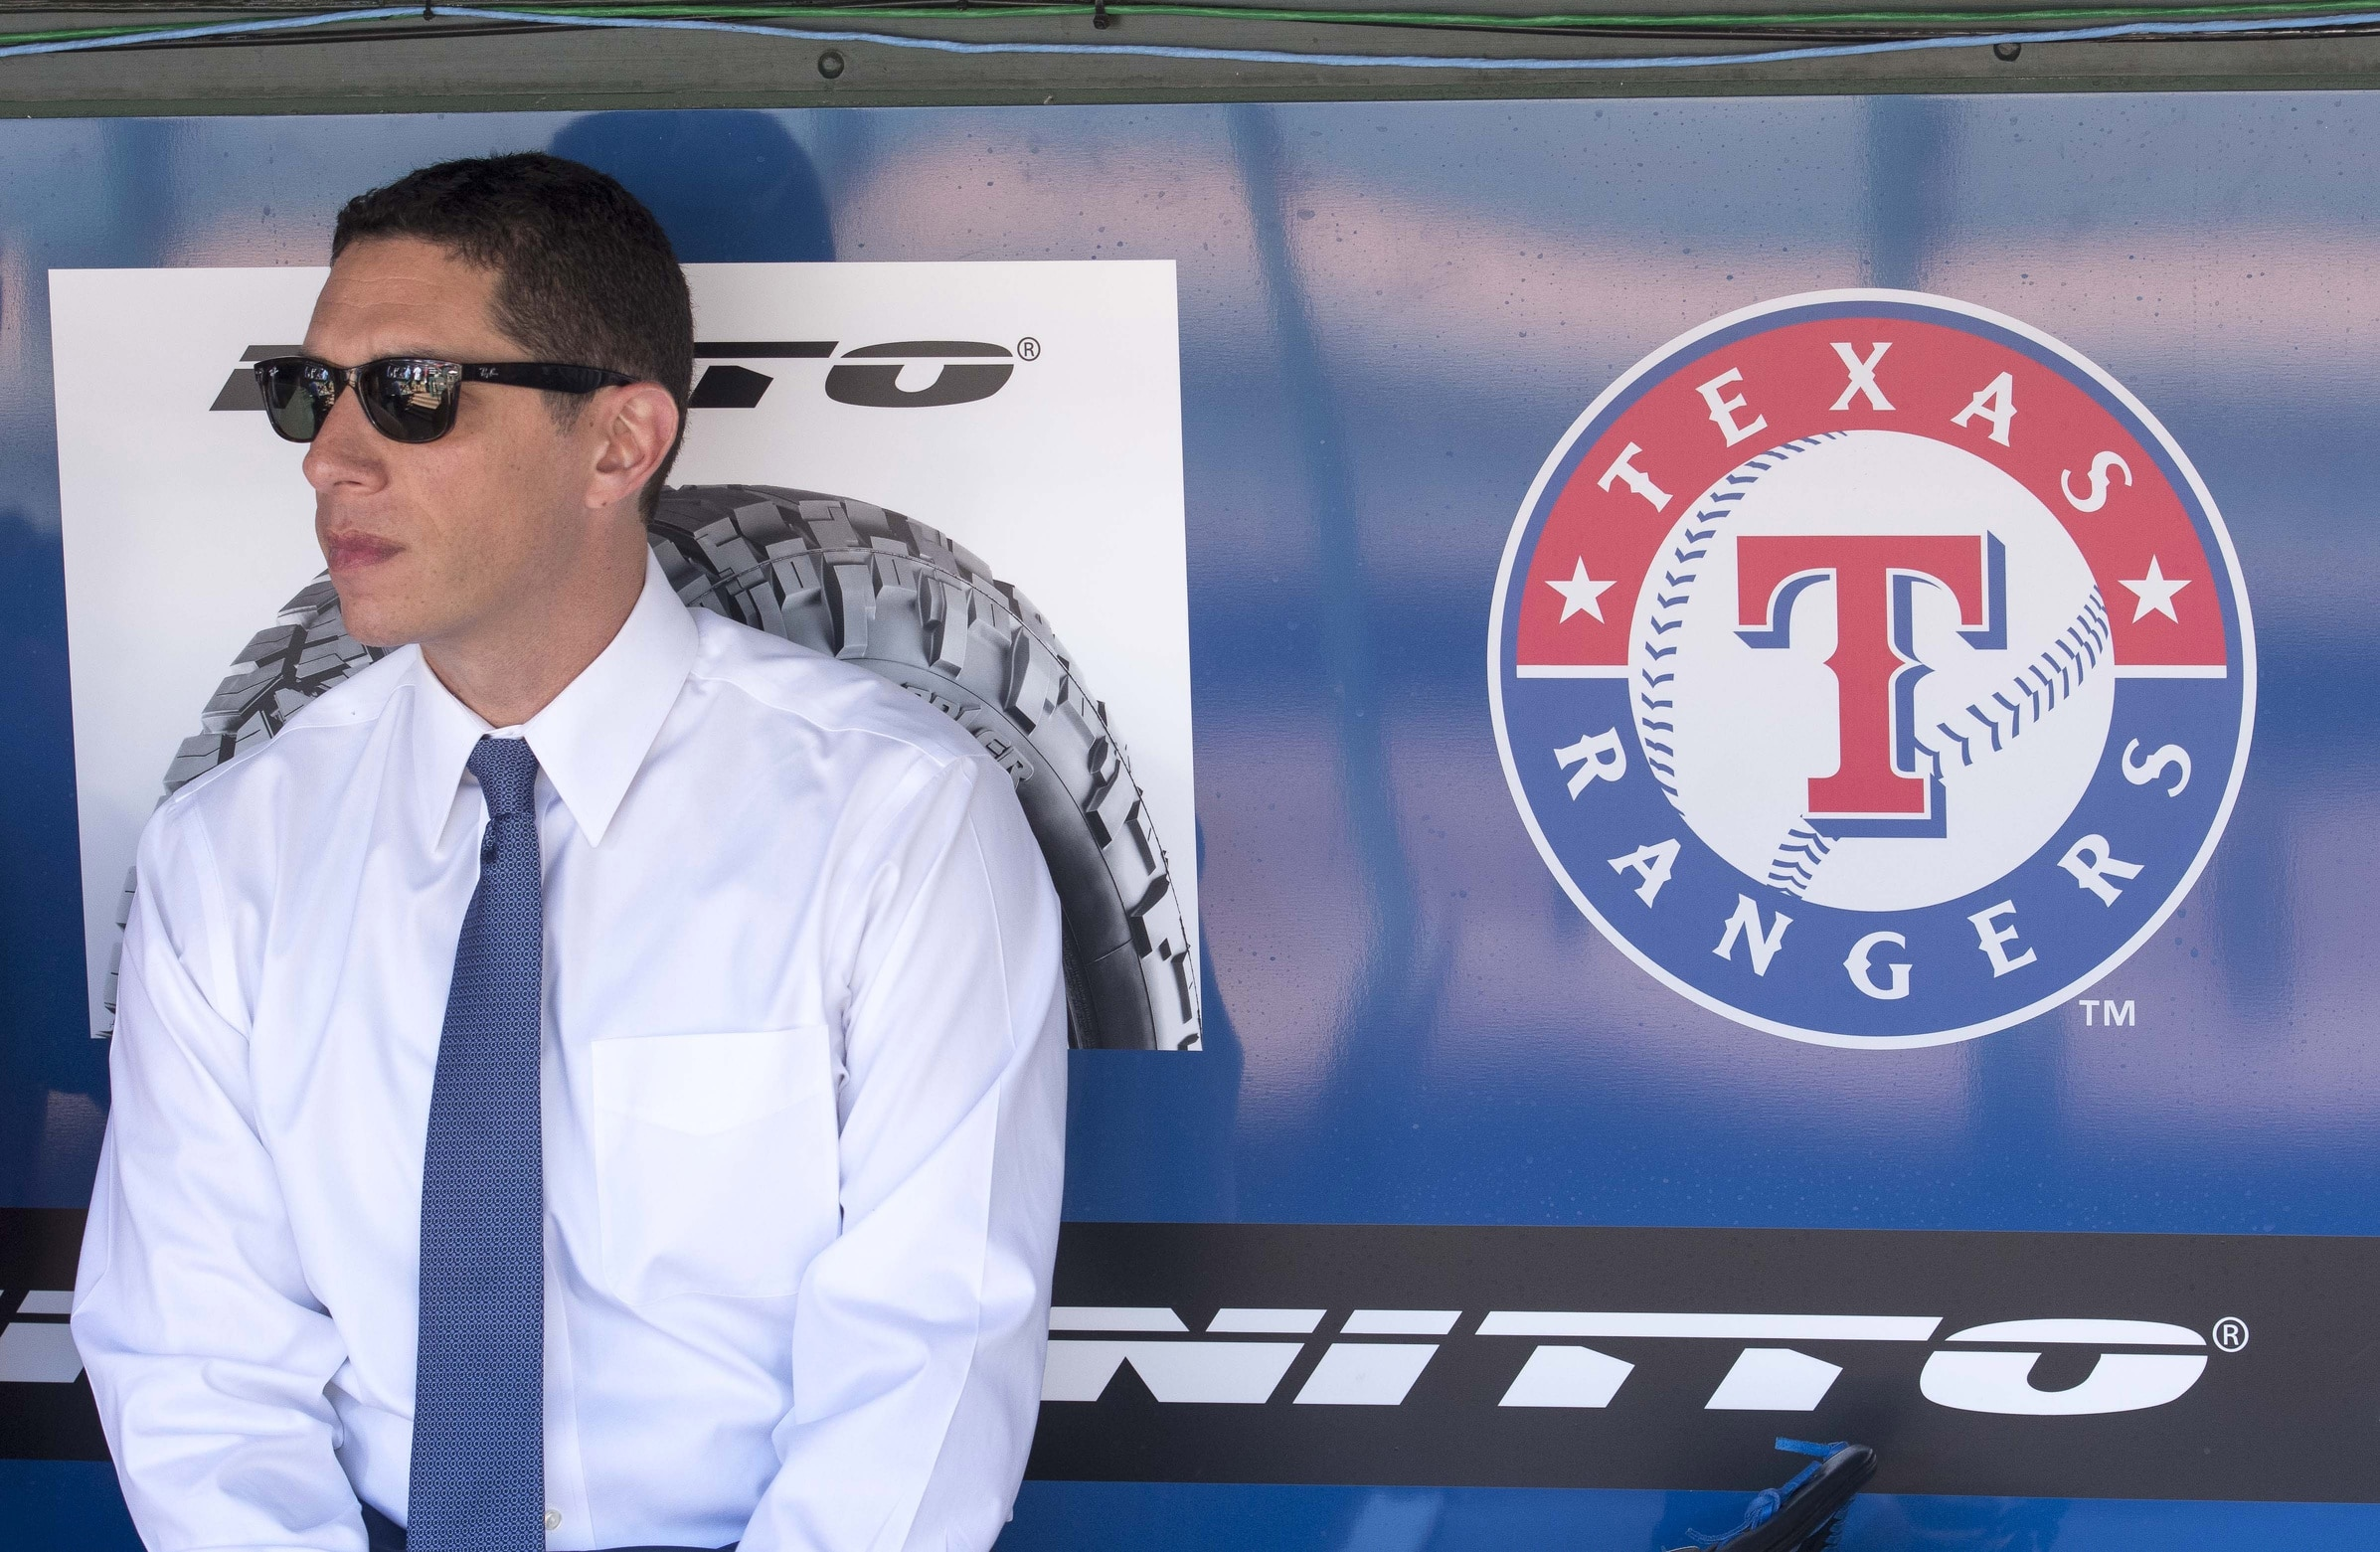 Apr 3, 2017; Arlington, TX, USA; Texas Rangers general manager Jon Daniels watches batting practice before the game between the Rangers and the Cleveland Indians at Globe Life Park in Arlington. Mandatory Credit: Jerome Miron-USA TODAY Sports